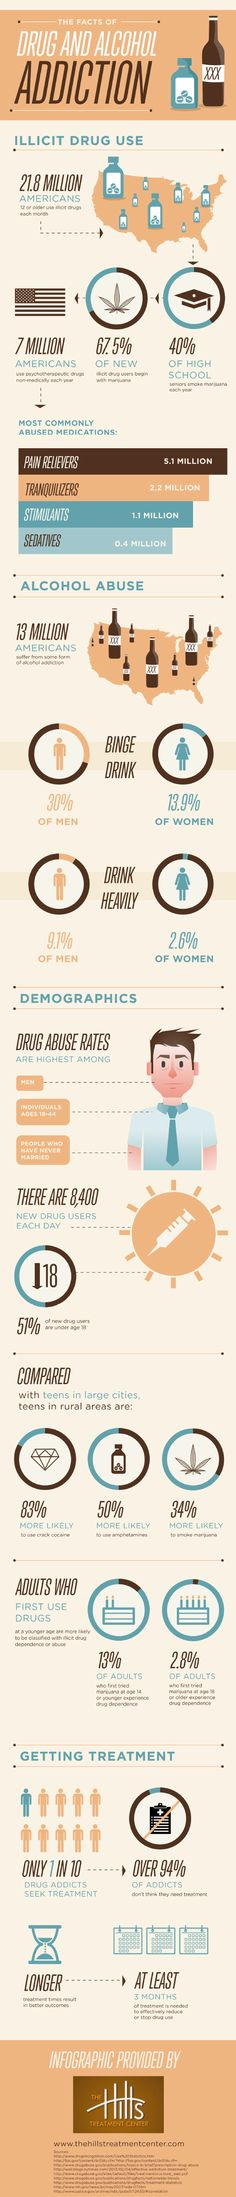 Adults who try drugs for the first time at a younger age are more likely to be classified with  illicit drug dependence or abuse when they get older.